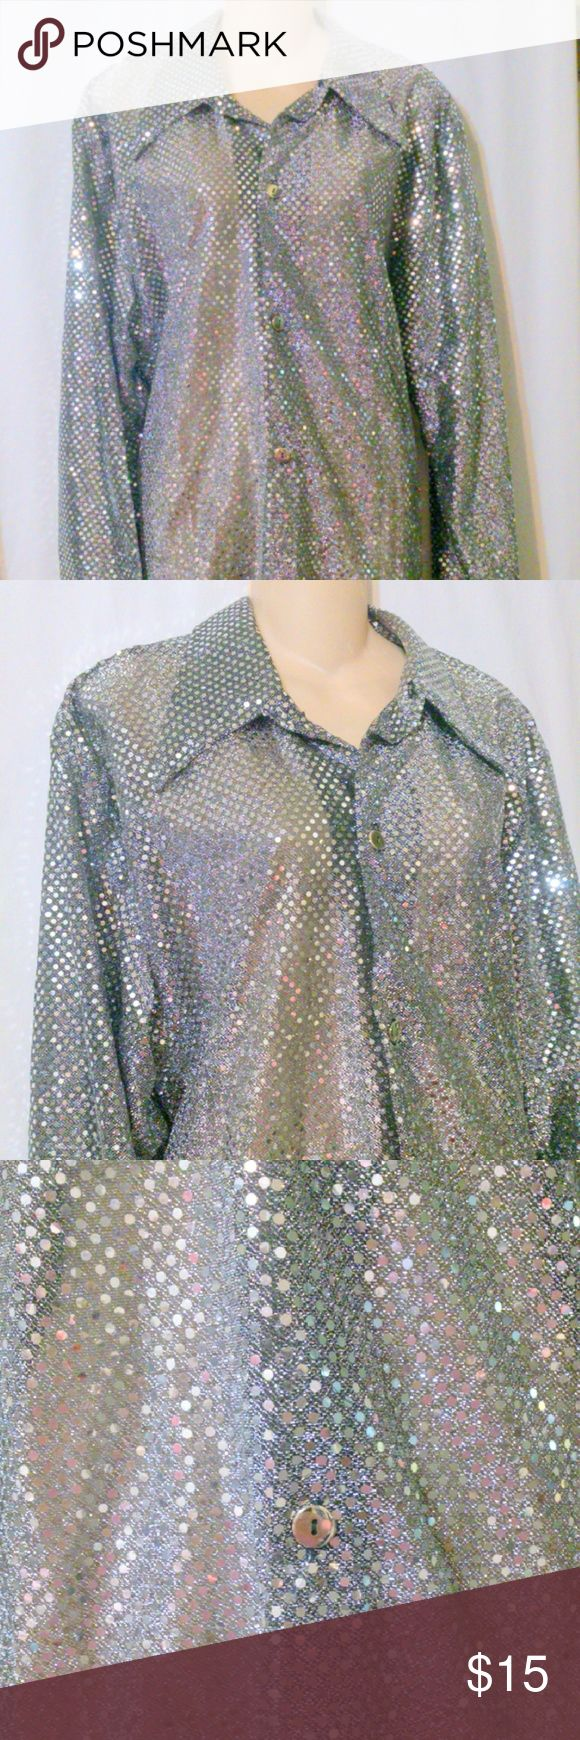 "Vintage 1970s CHARADES Silver Metallic Blouse? This vintage blouse is made by Charades and is a size large. The blouse is done in a polyester metallic silver disc design with a button front. Measurements are: Bust 48"", sleeves 24"", length 30"". In excellent condition! Charade's Tops Blouses"